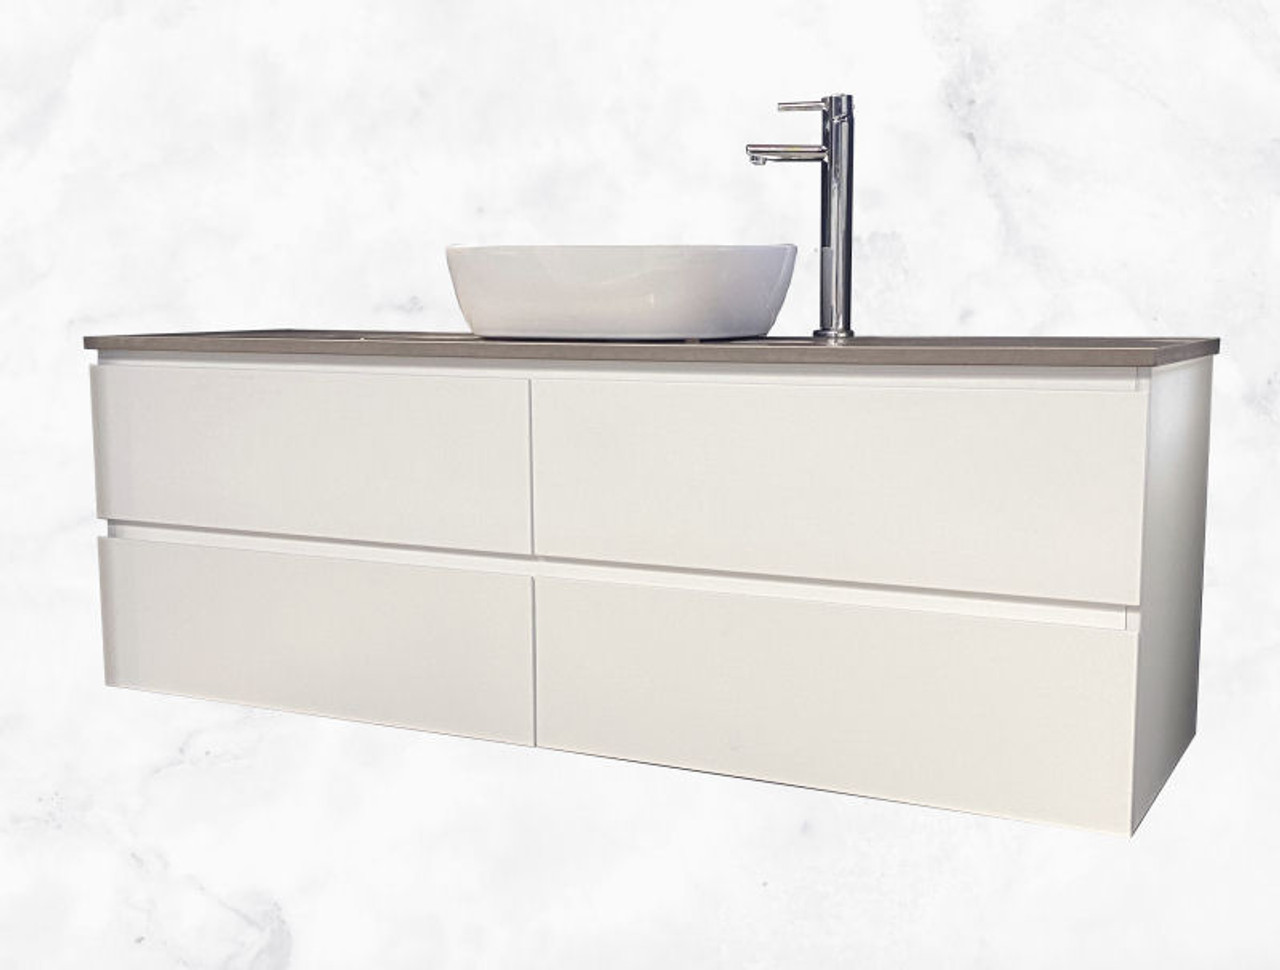 Infinity Premium All Drawers Wall Hung Vanity Stone Bench Top Standard Depth Twin Height Size